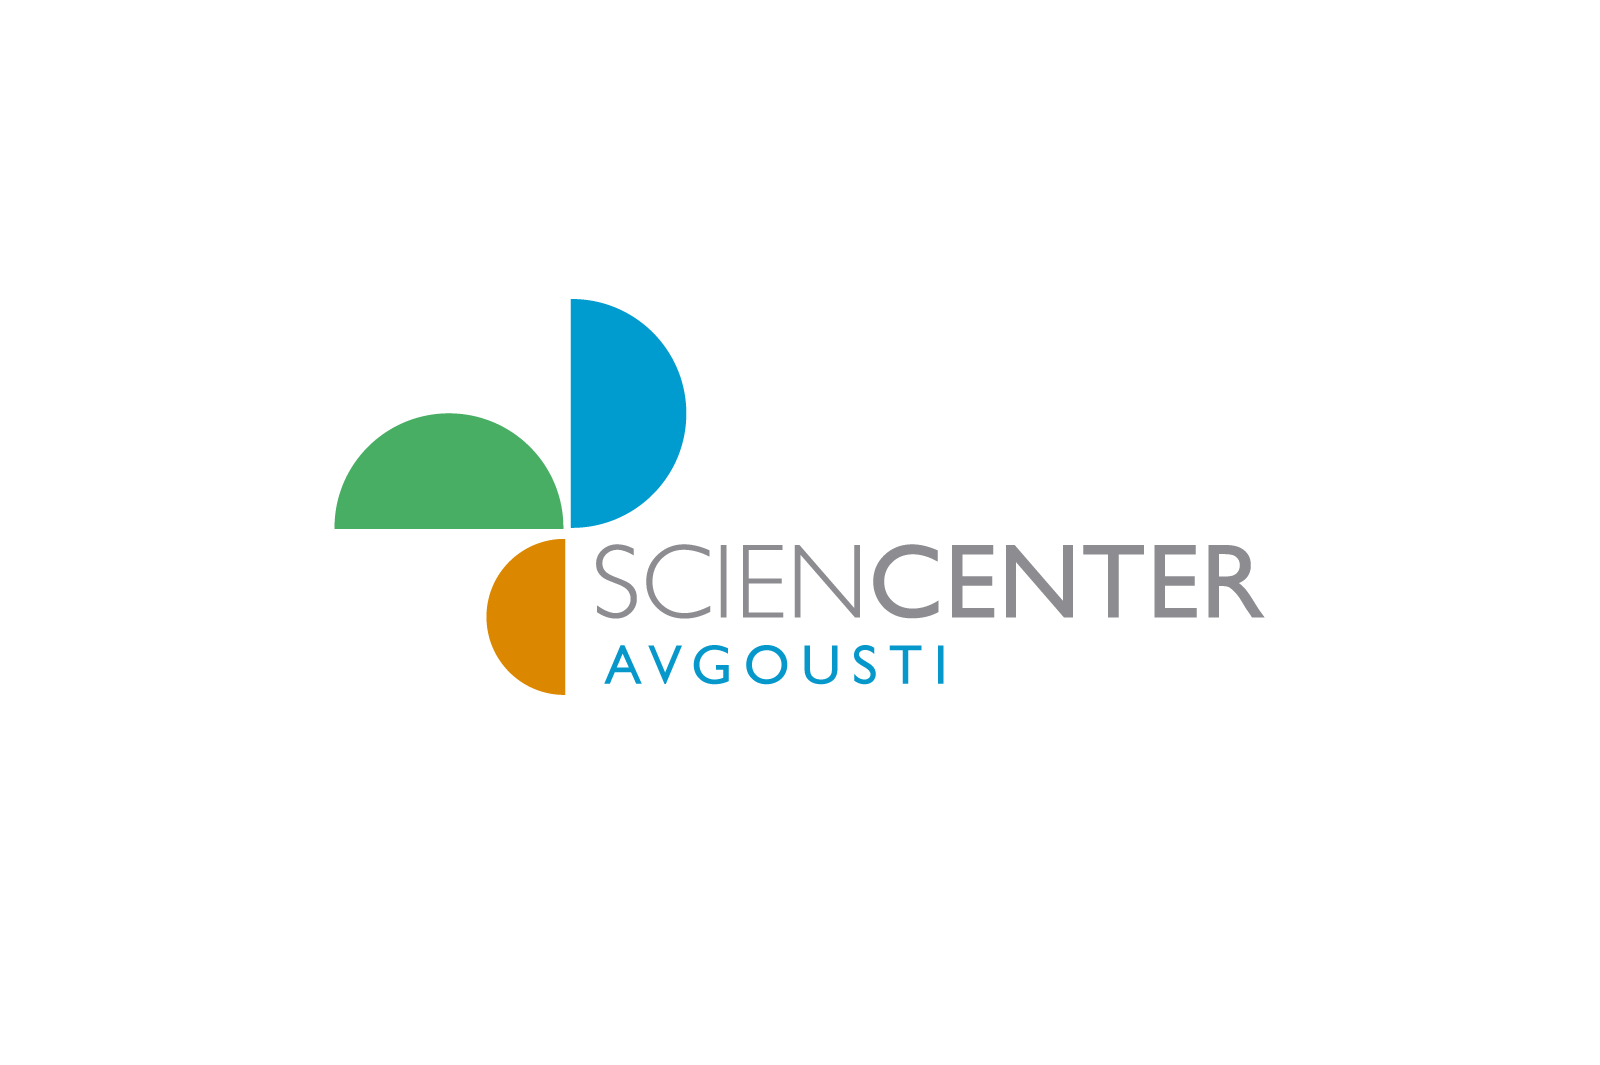 sciencenter_logo.png